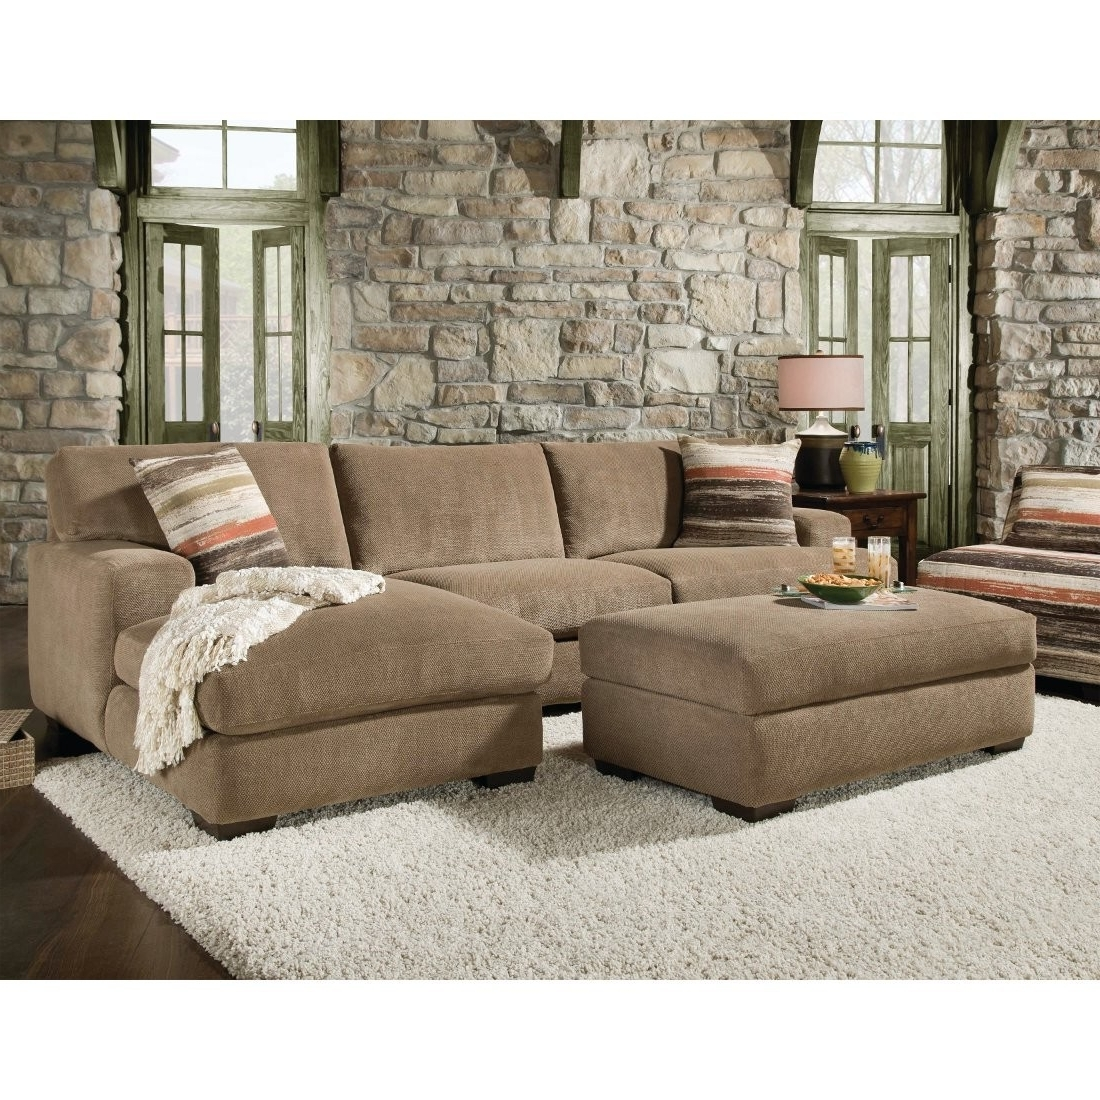 Long Sectional Sofas With Chaise Inside Popular Beautiful Sectional Sofa With Chaise And Ottoman Pictures (View 10 of 20)